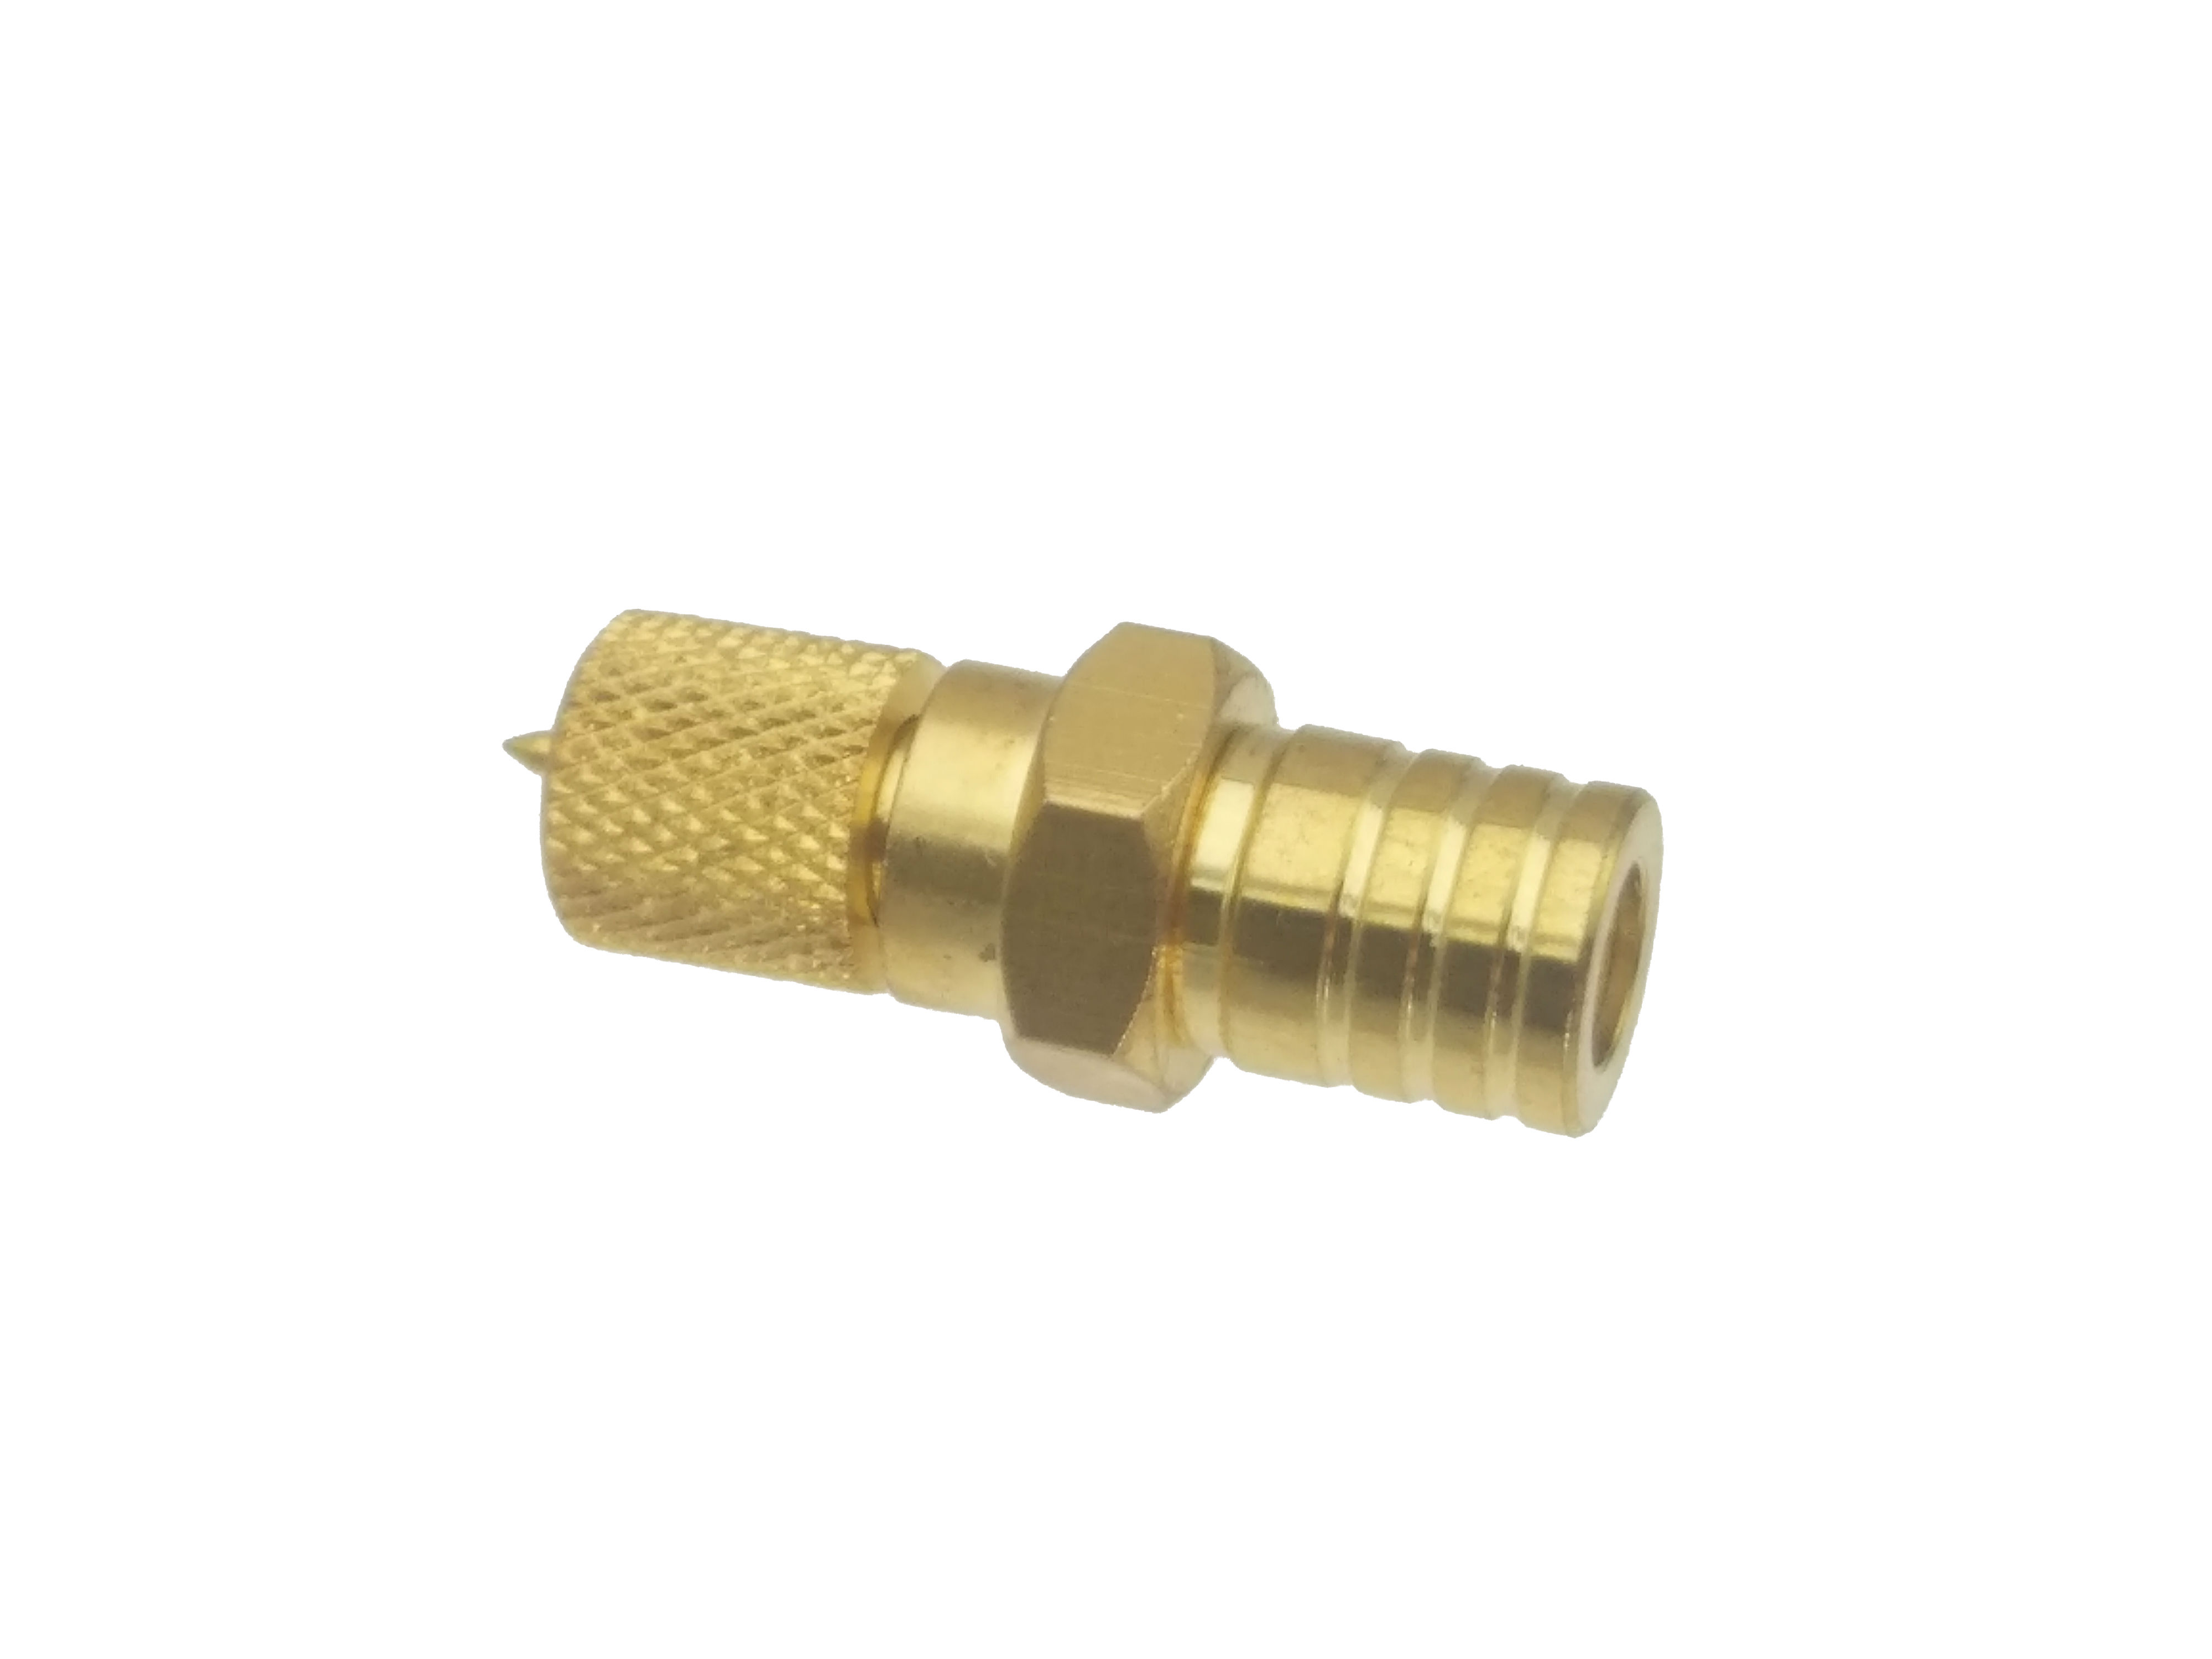 1pce BNC Male to L5 Microdot 10-32UNF Female Adapter for Ultrasonic Flaw